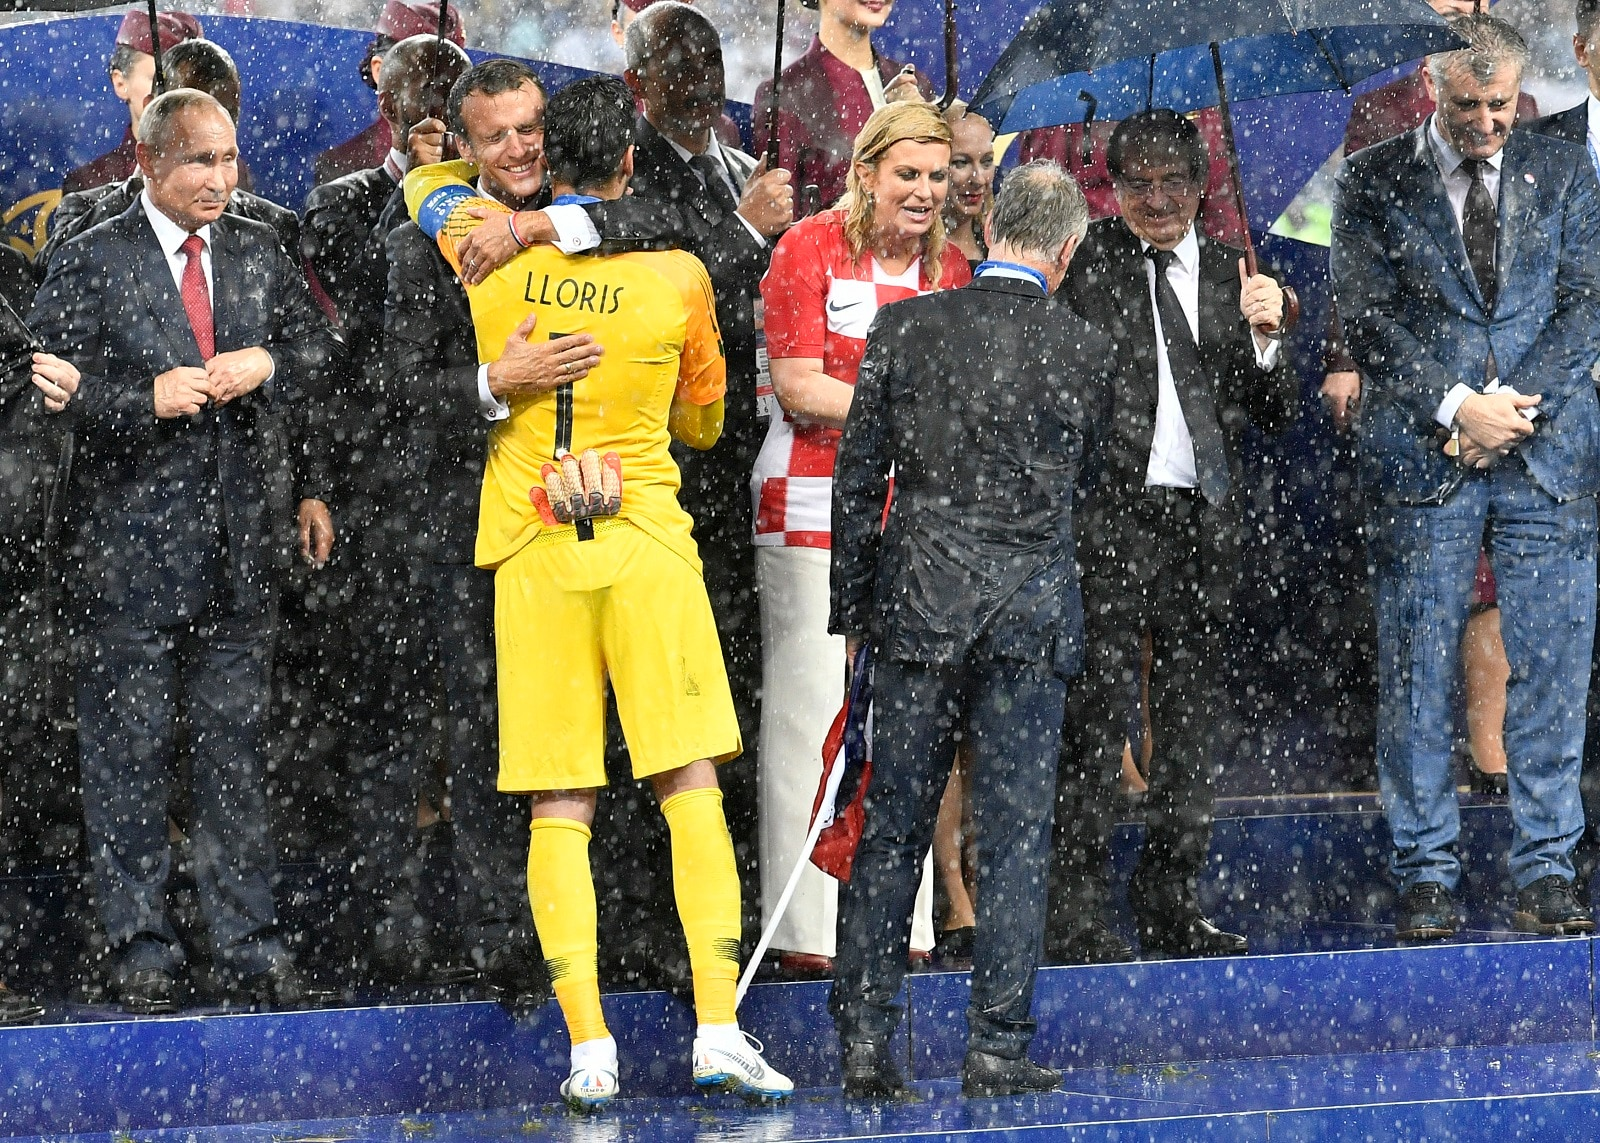 Russian President Vladimir Putin, from left, looks on as French President Emmanuel Macron hugs France goalkeeper Hugo Lloris and Croatian President Kolinda Grabar-Kitarovic congratulates France head coach Didier Deschamps after France won 4-2 in the final match between France and Croatia at the 2018 soccer World Cup in the Luzhniki Stadium in Moscow, Russia, Saturday, July 14, 2018. (AP Photo/Martin Meissner)